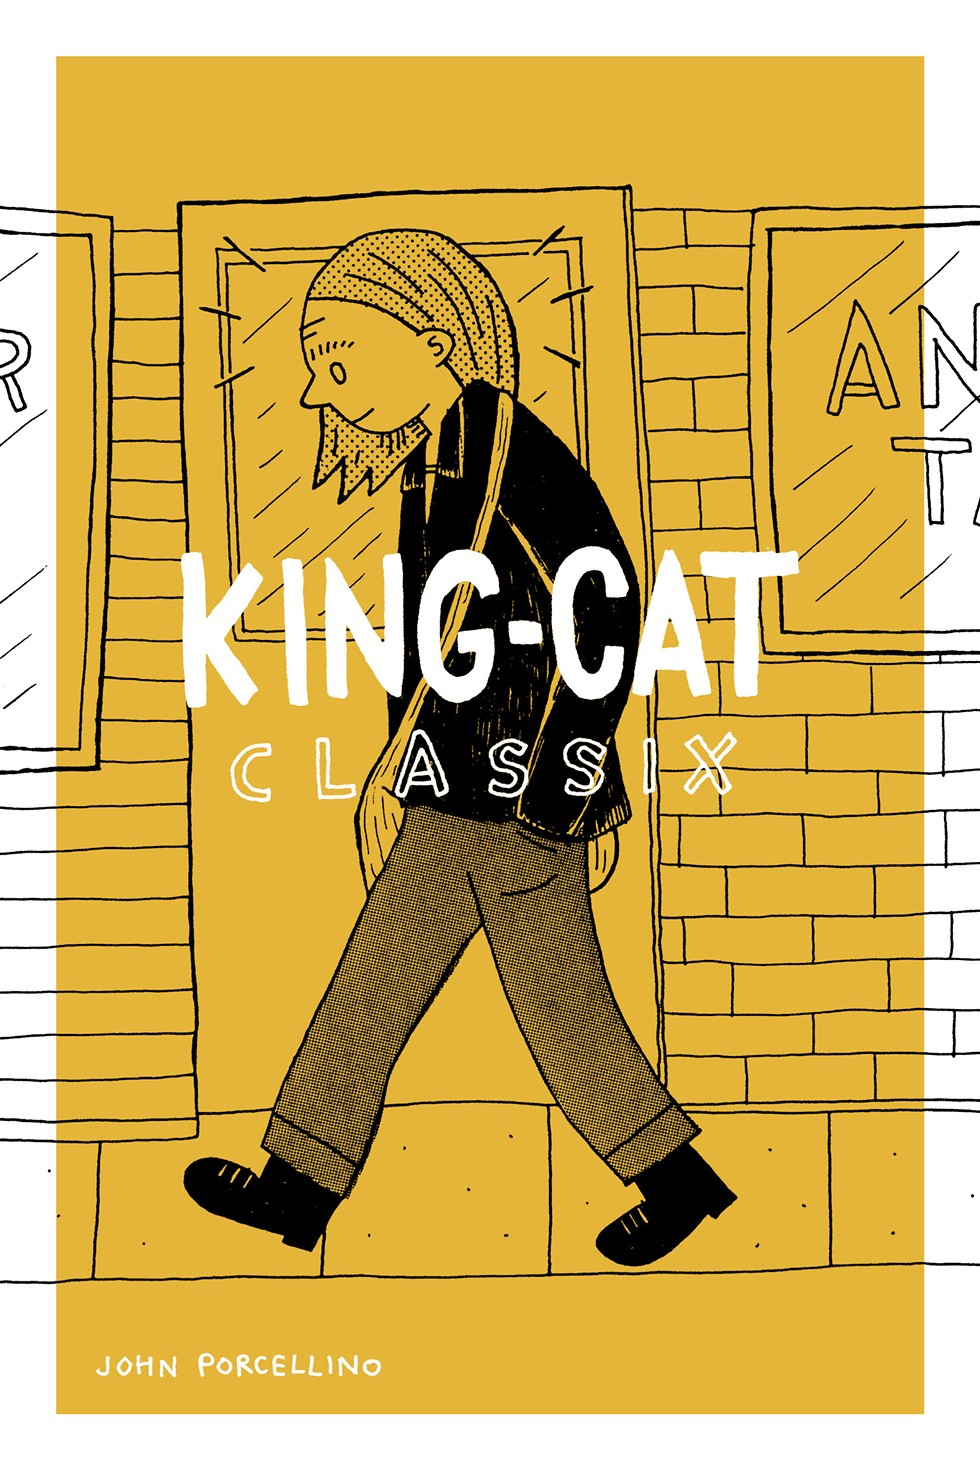 King-Cat Classix is a collection of John Porcellino's zine content from 1989 to 2002. - COURTESY DRAWN & QUARTERLY